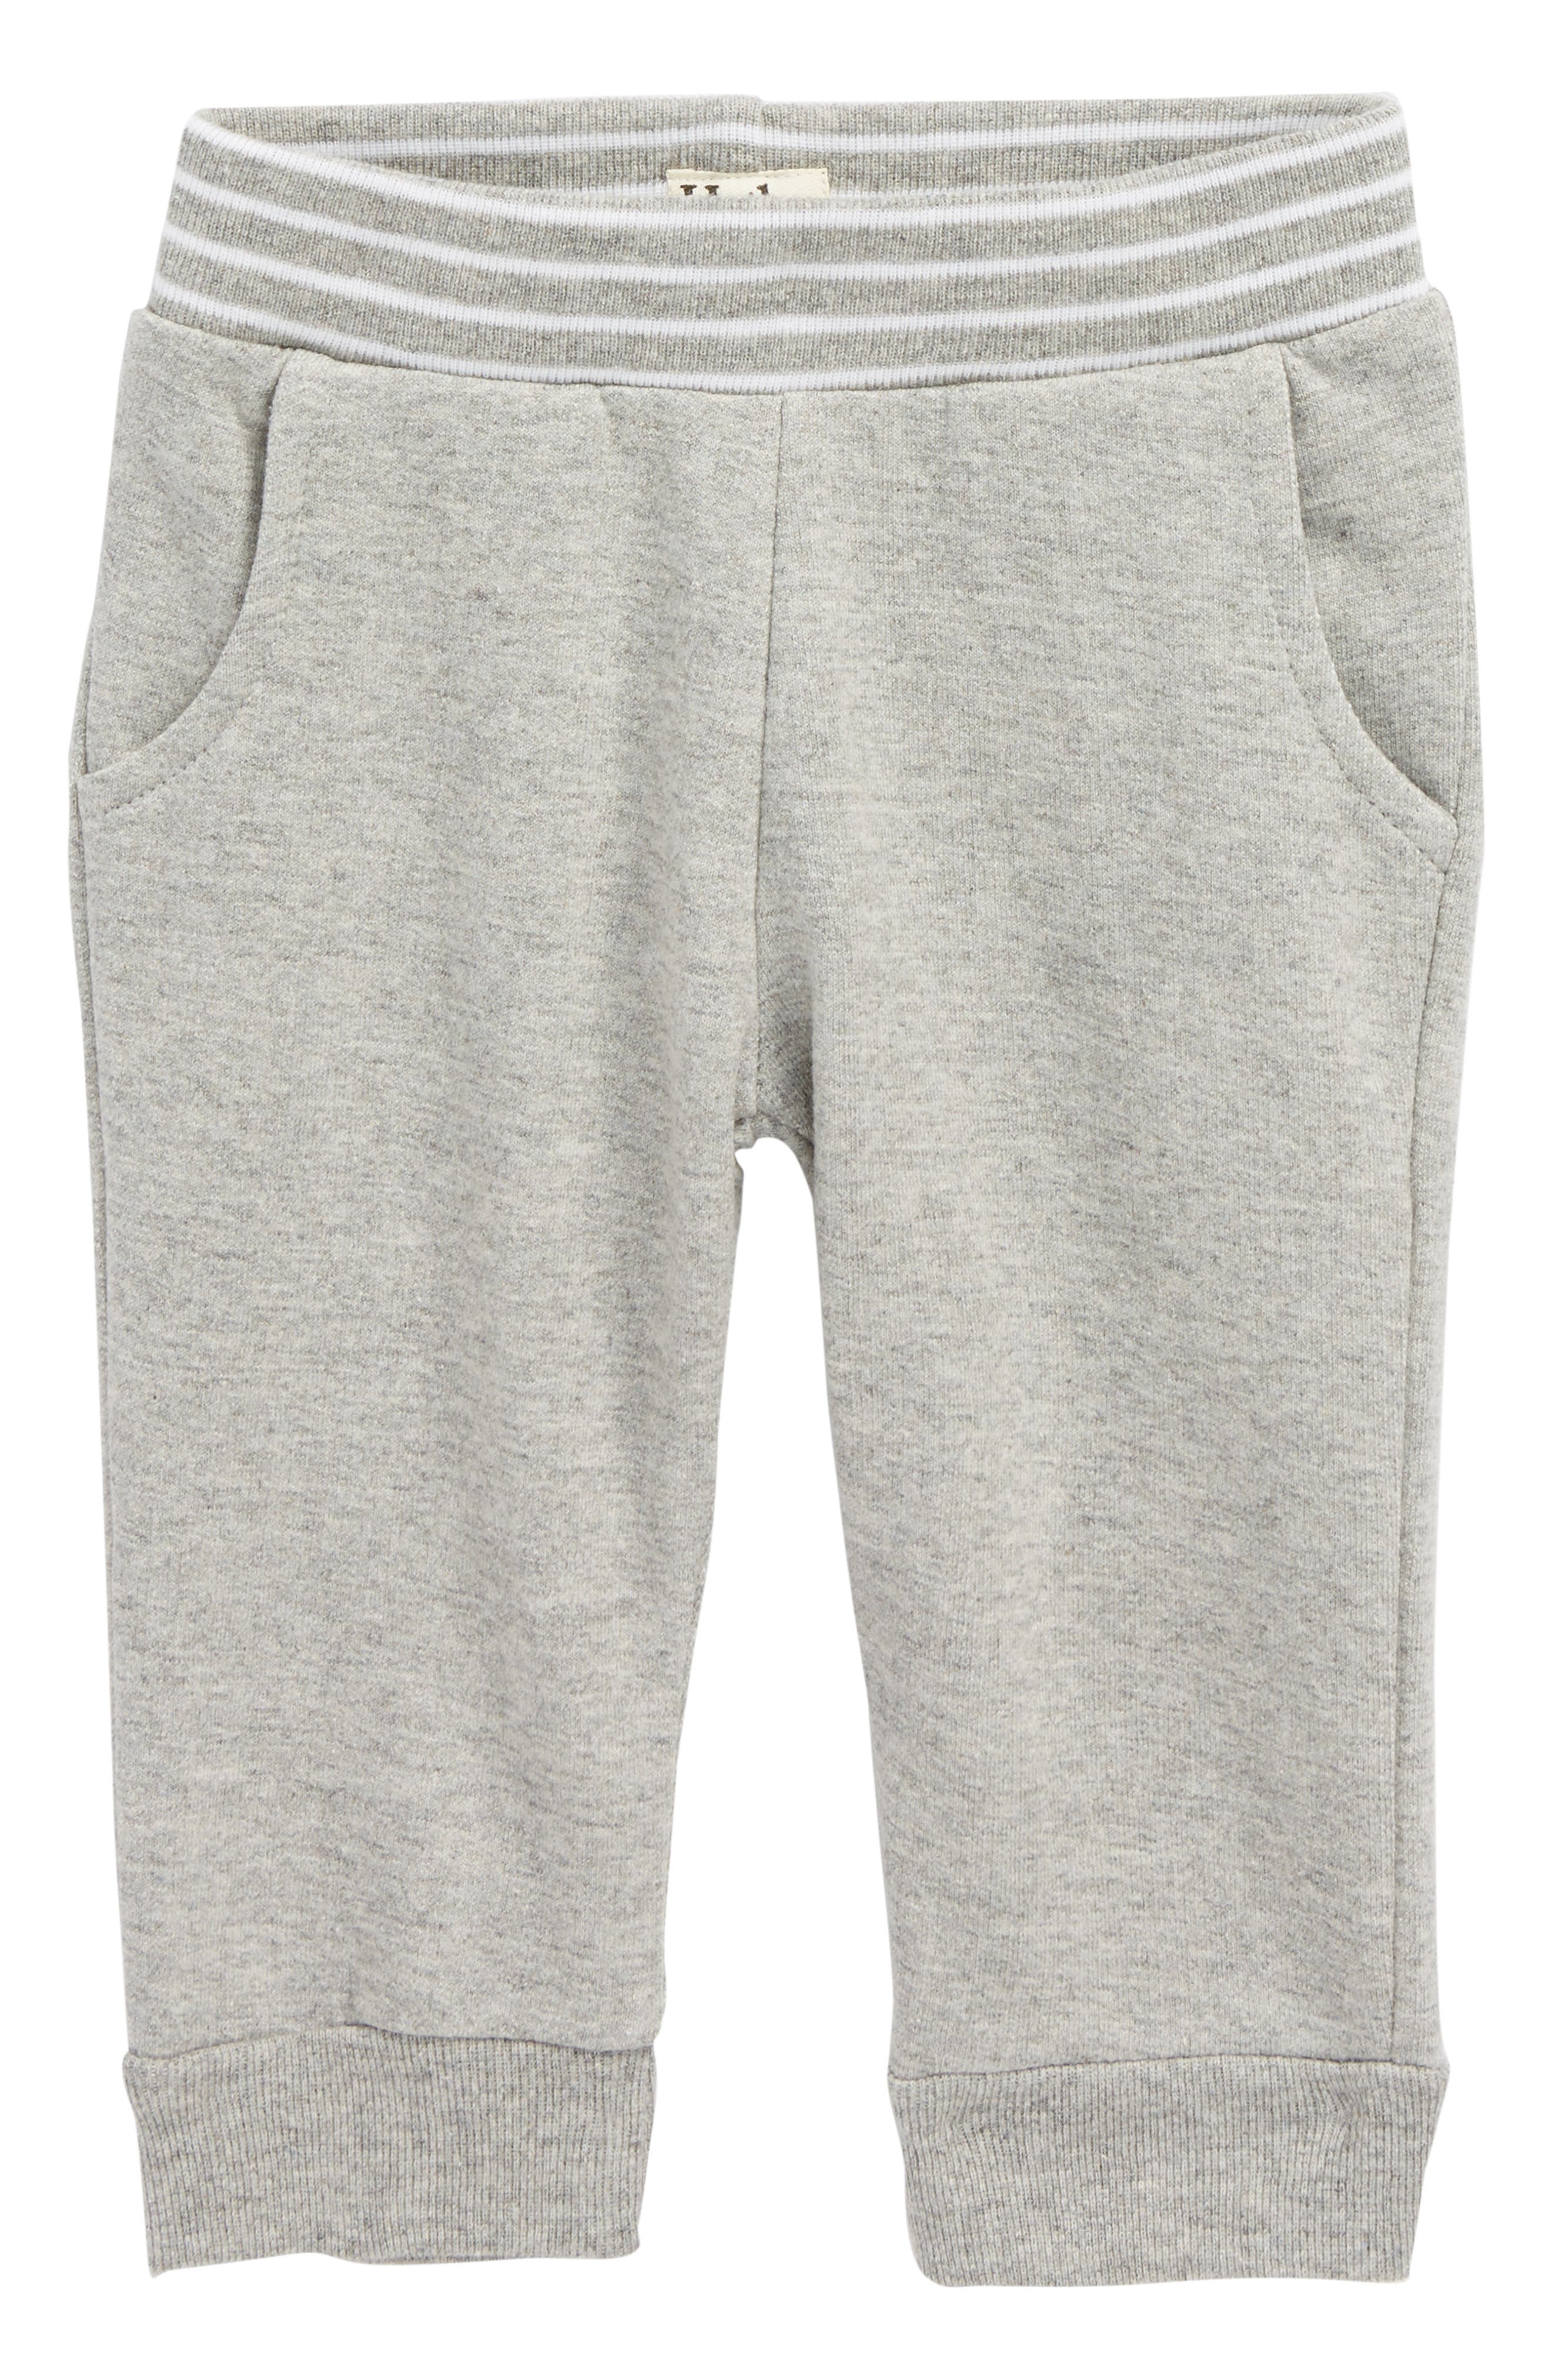 Alternate Image 1 Selected - Hatley Jogger Pants (Baby Boys)